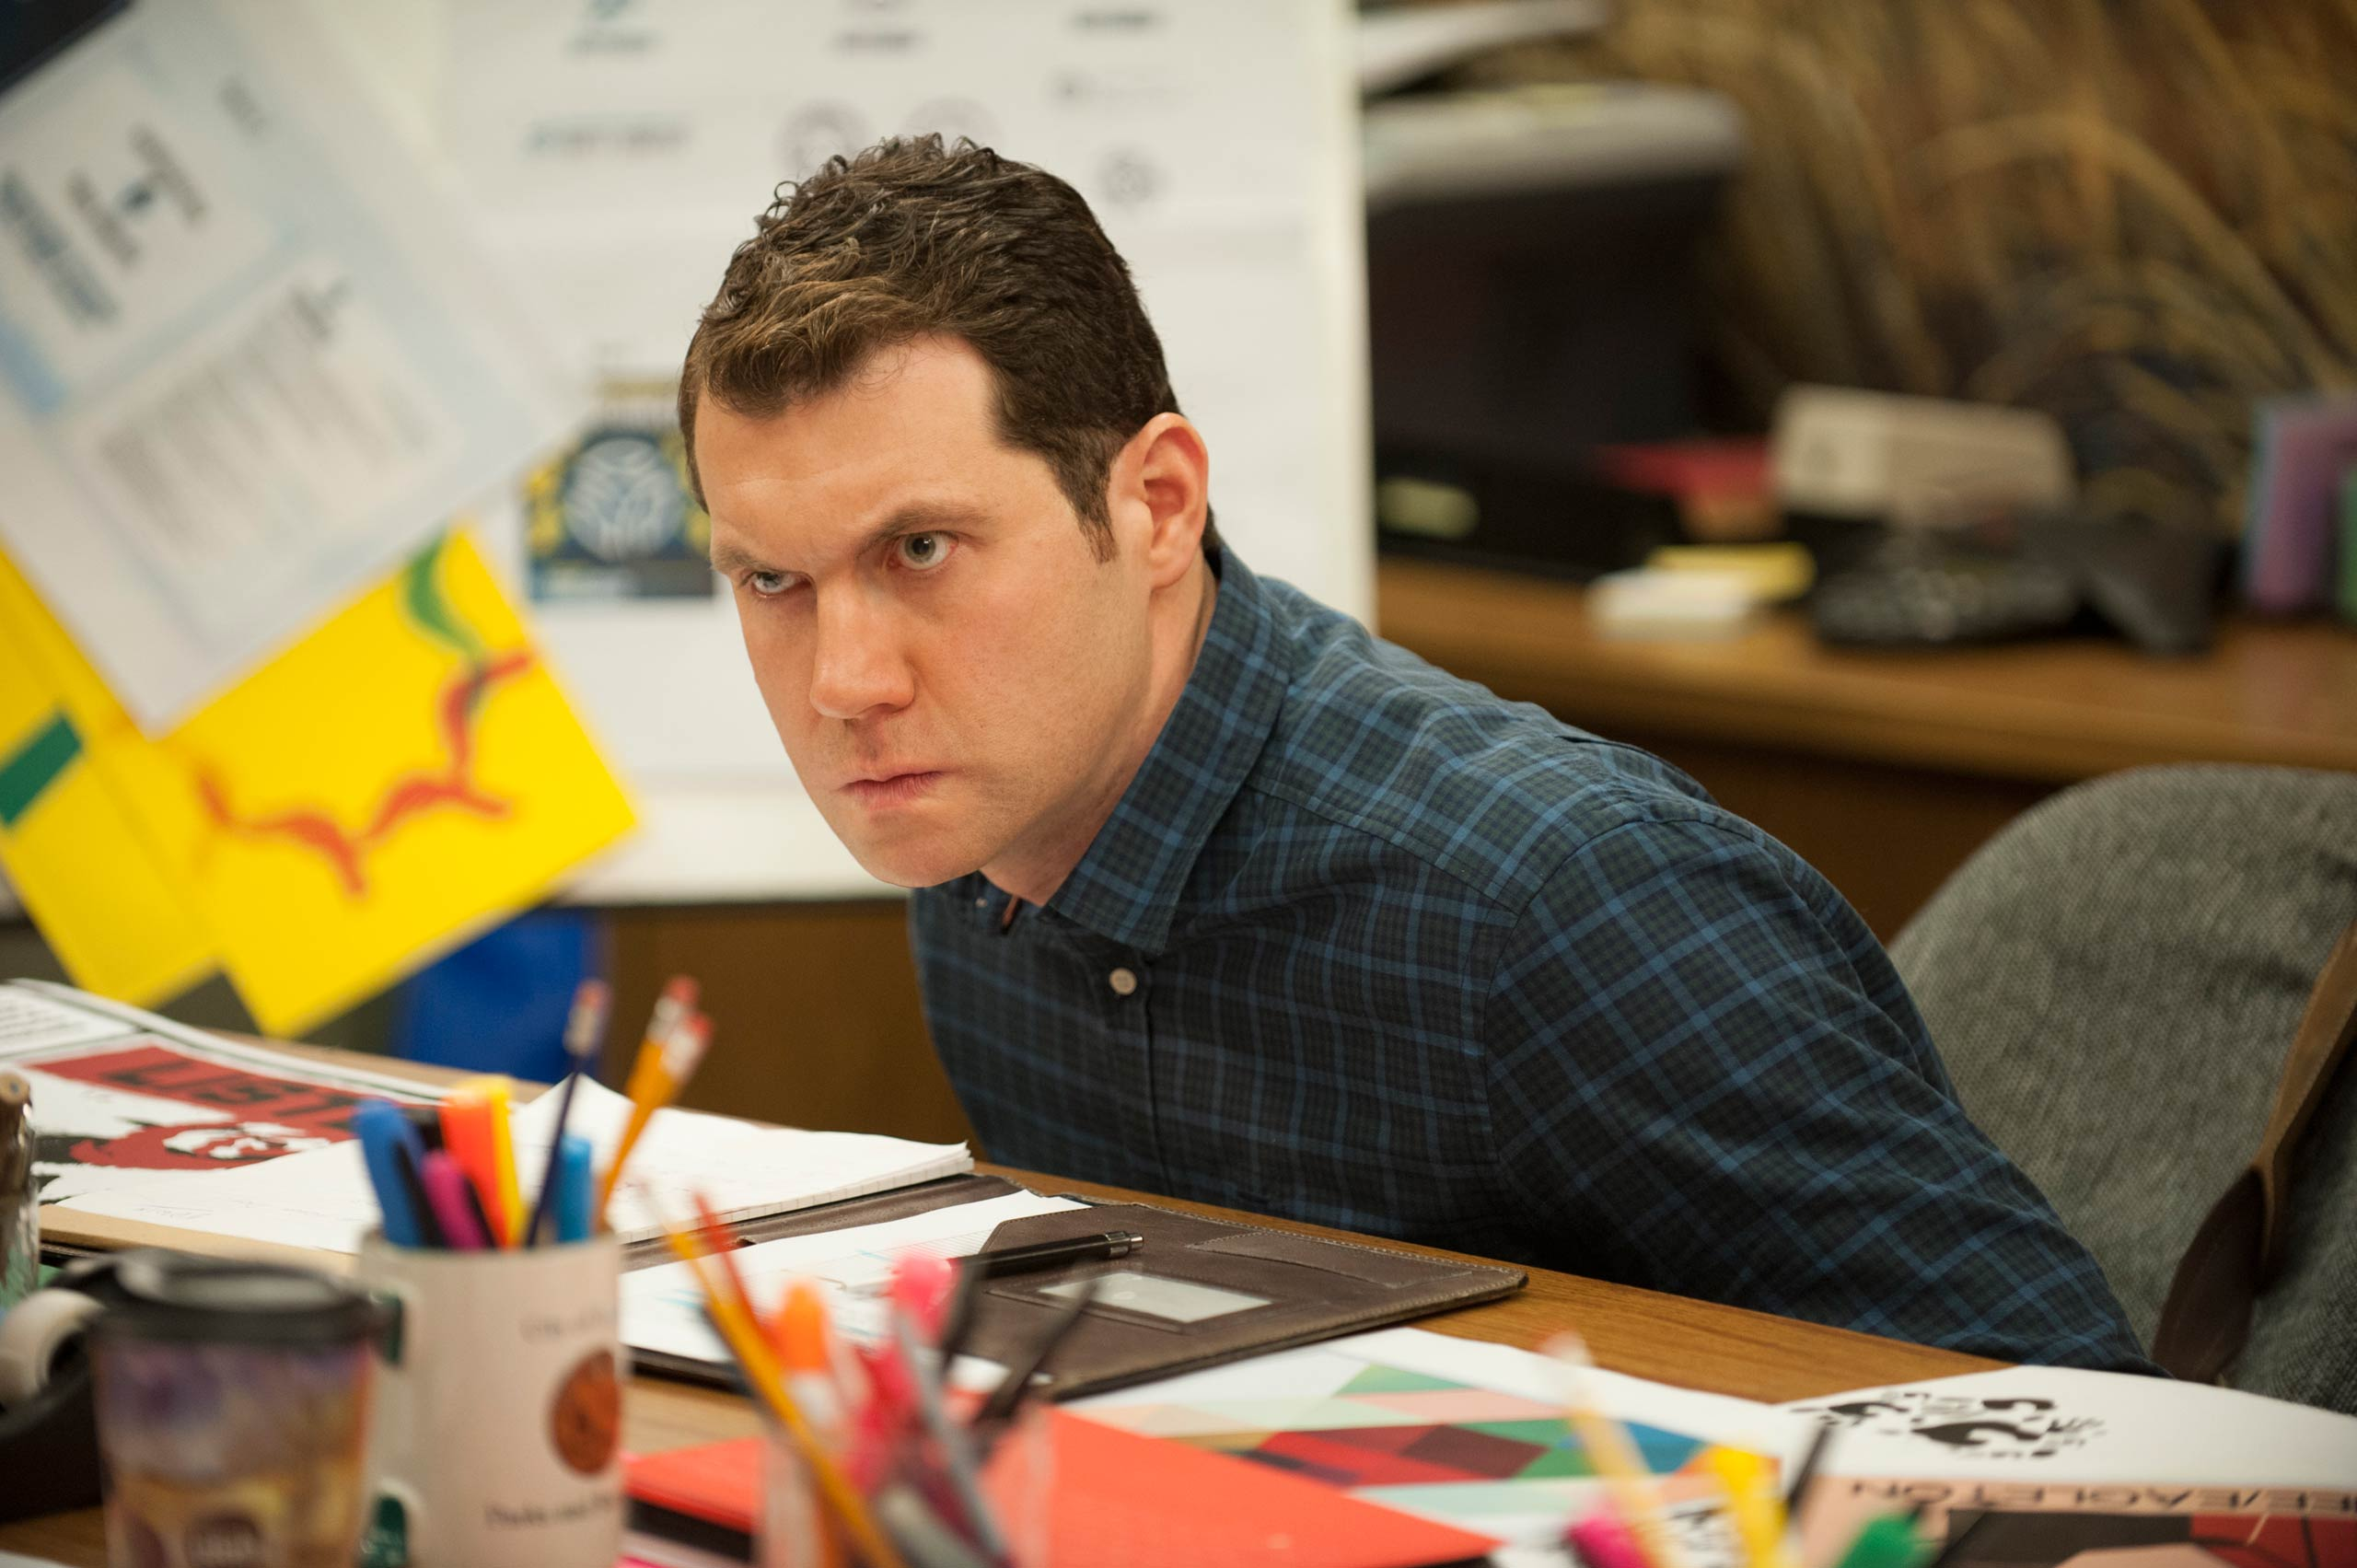 <strong>Billy Eichner as Craig</strong>